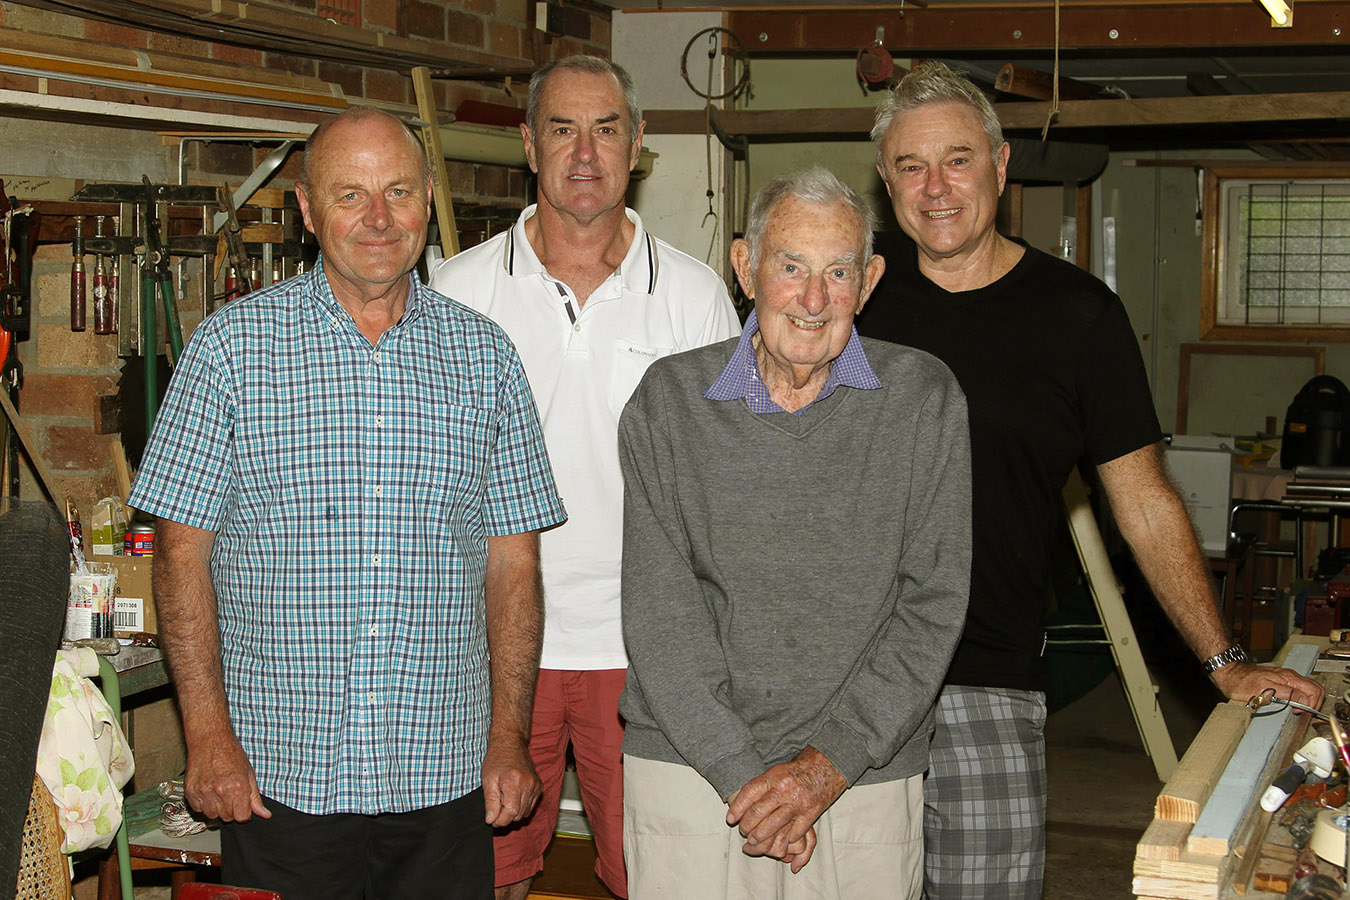 18ft Skiffs The Kulmar Family - From left, Paul Ziems, Paul Kulmar, the late Les Kulmar, Stephen Kulmar in the garage under the Kulmar family home (2014)